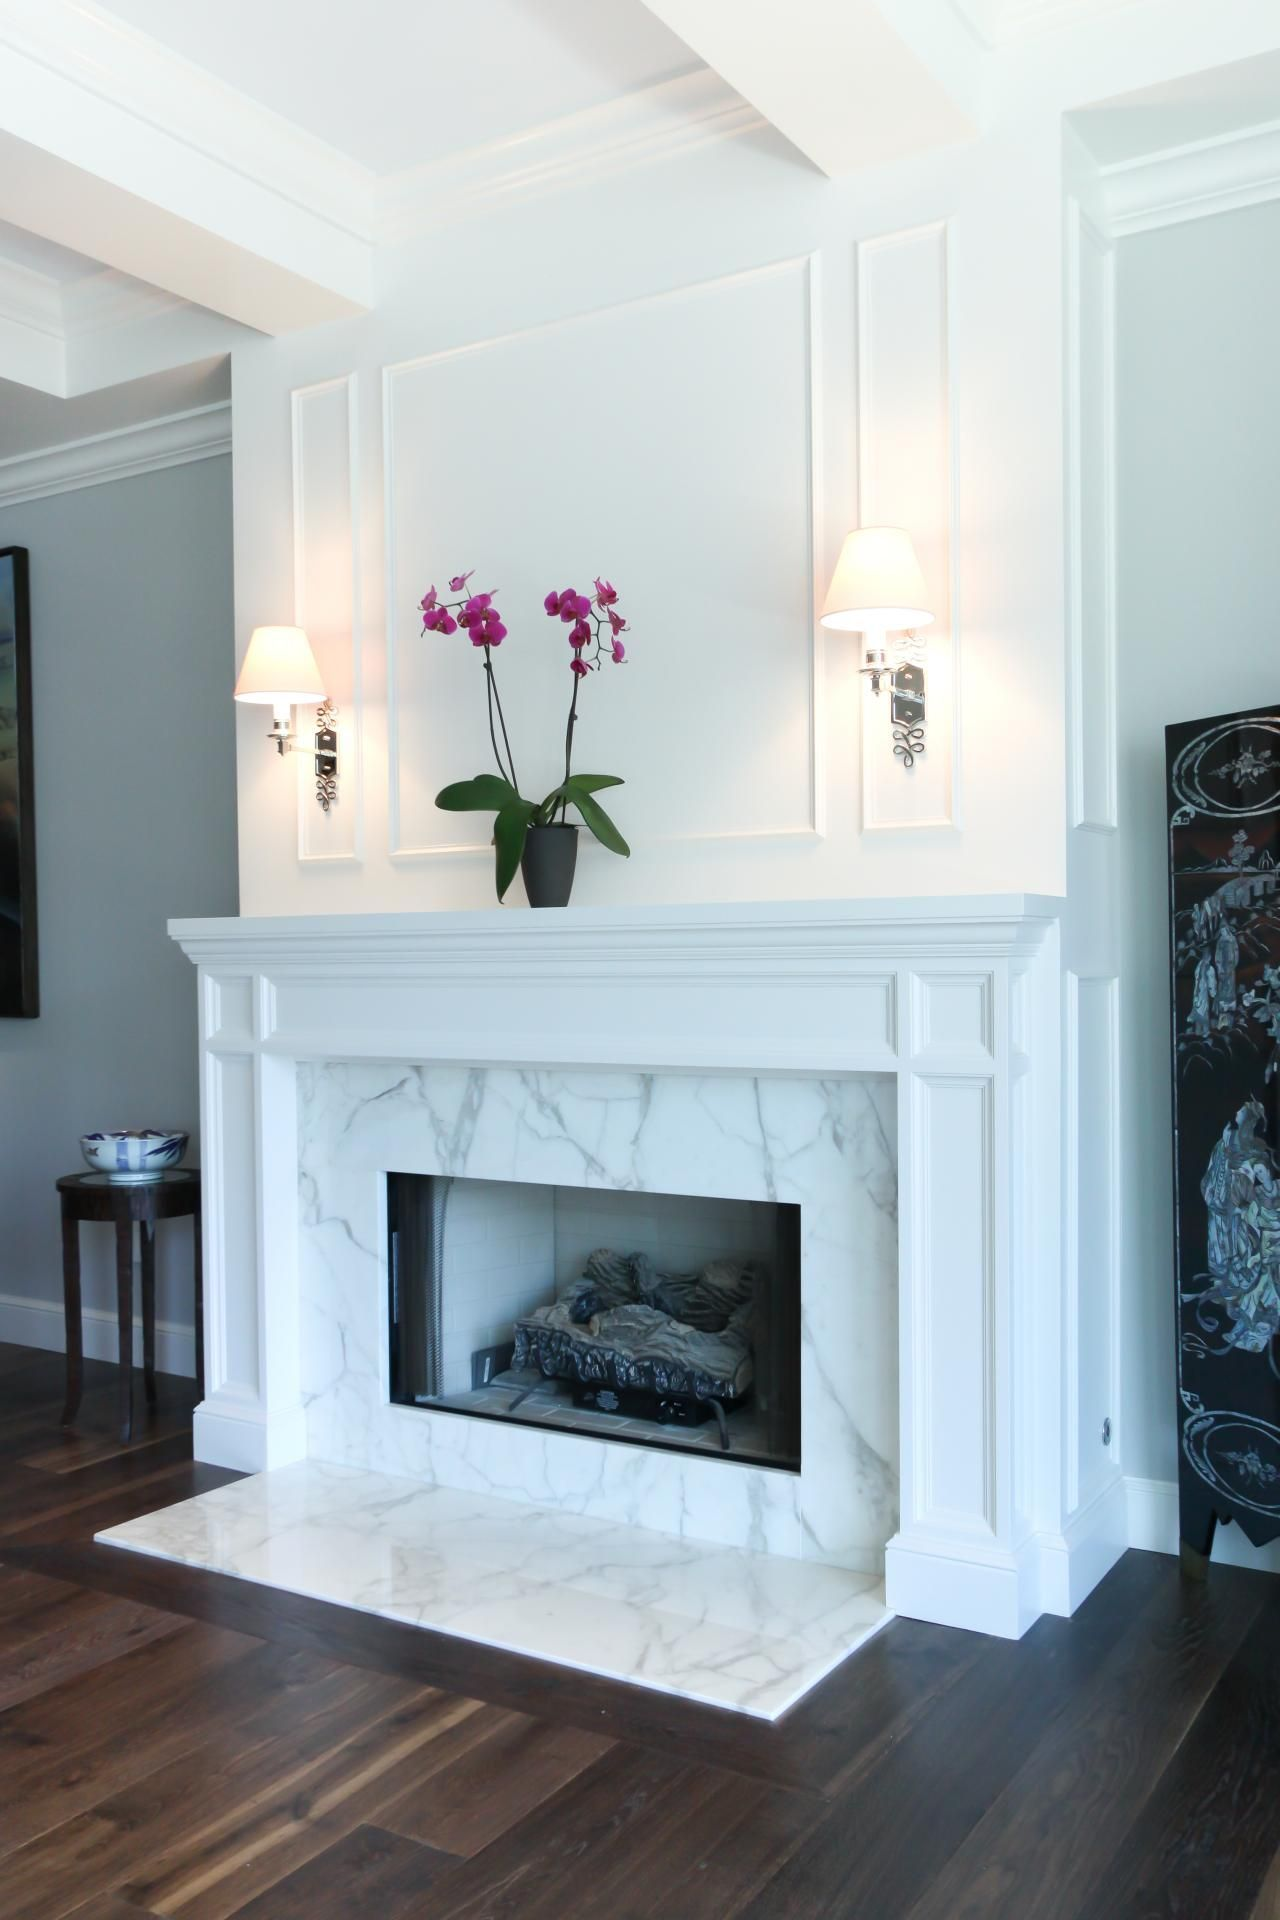 20+ Best Fireplace Mantel Ideas For Your Home | Transitional living ...